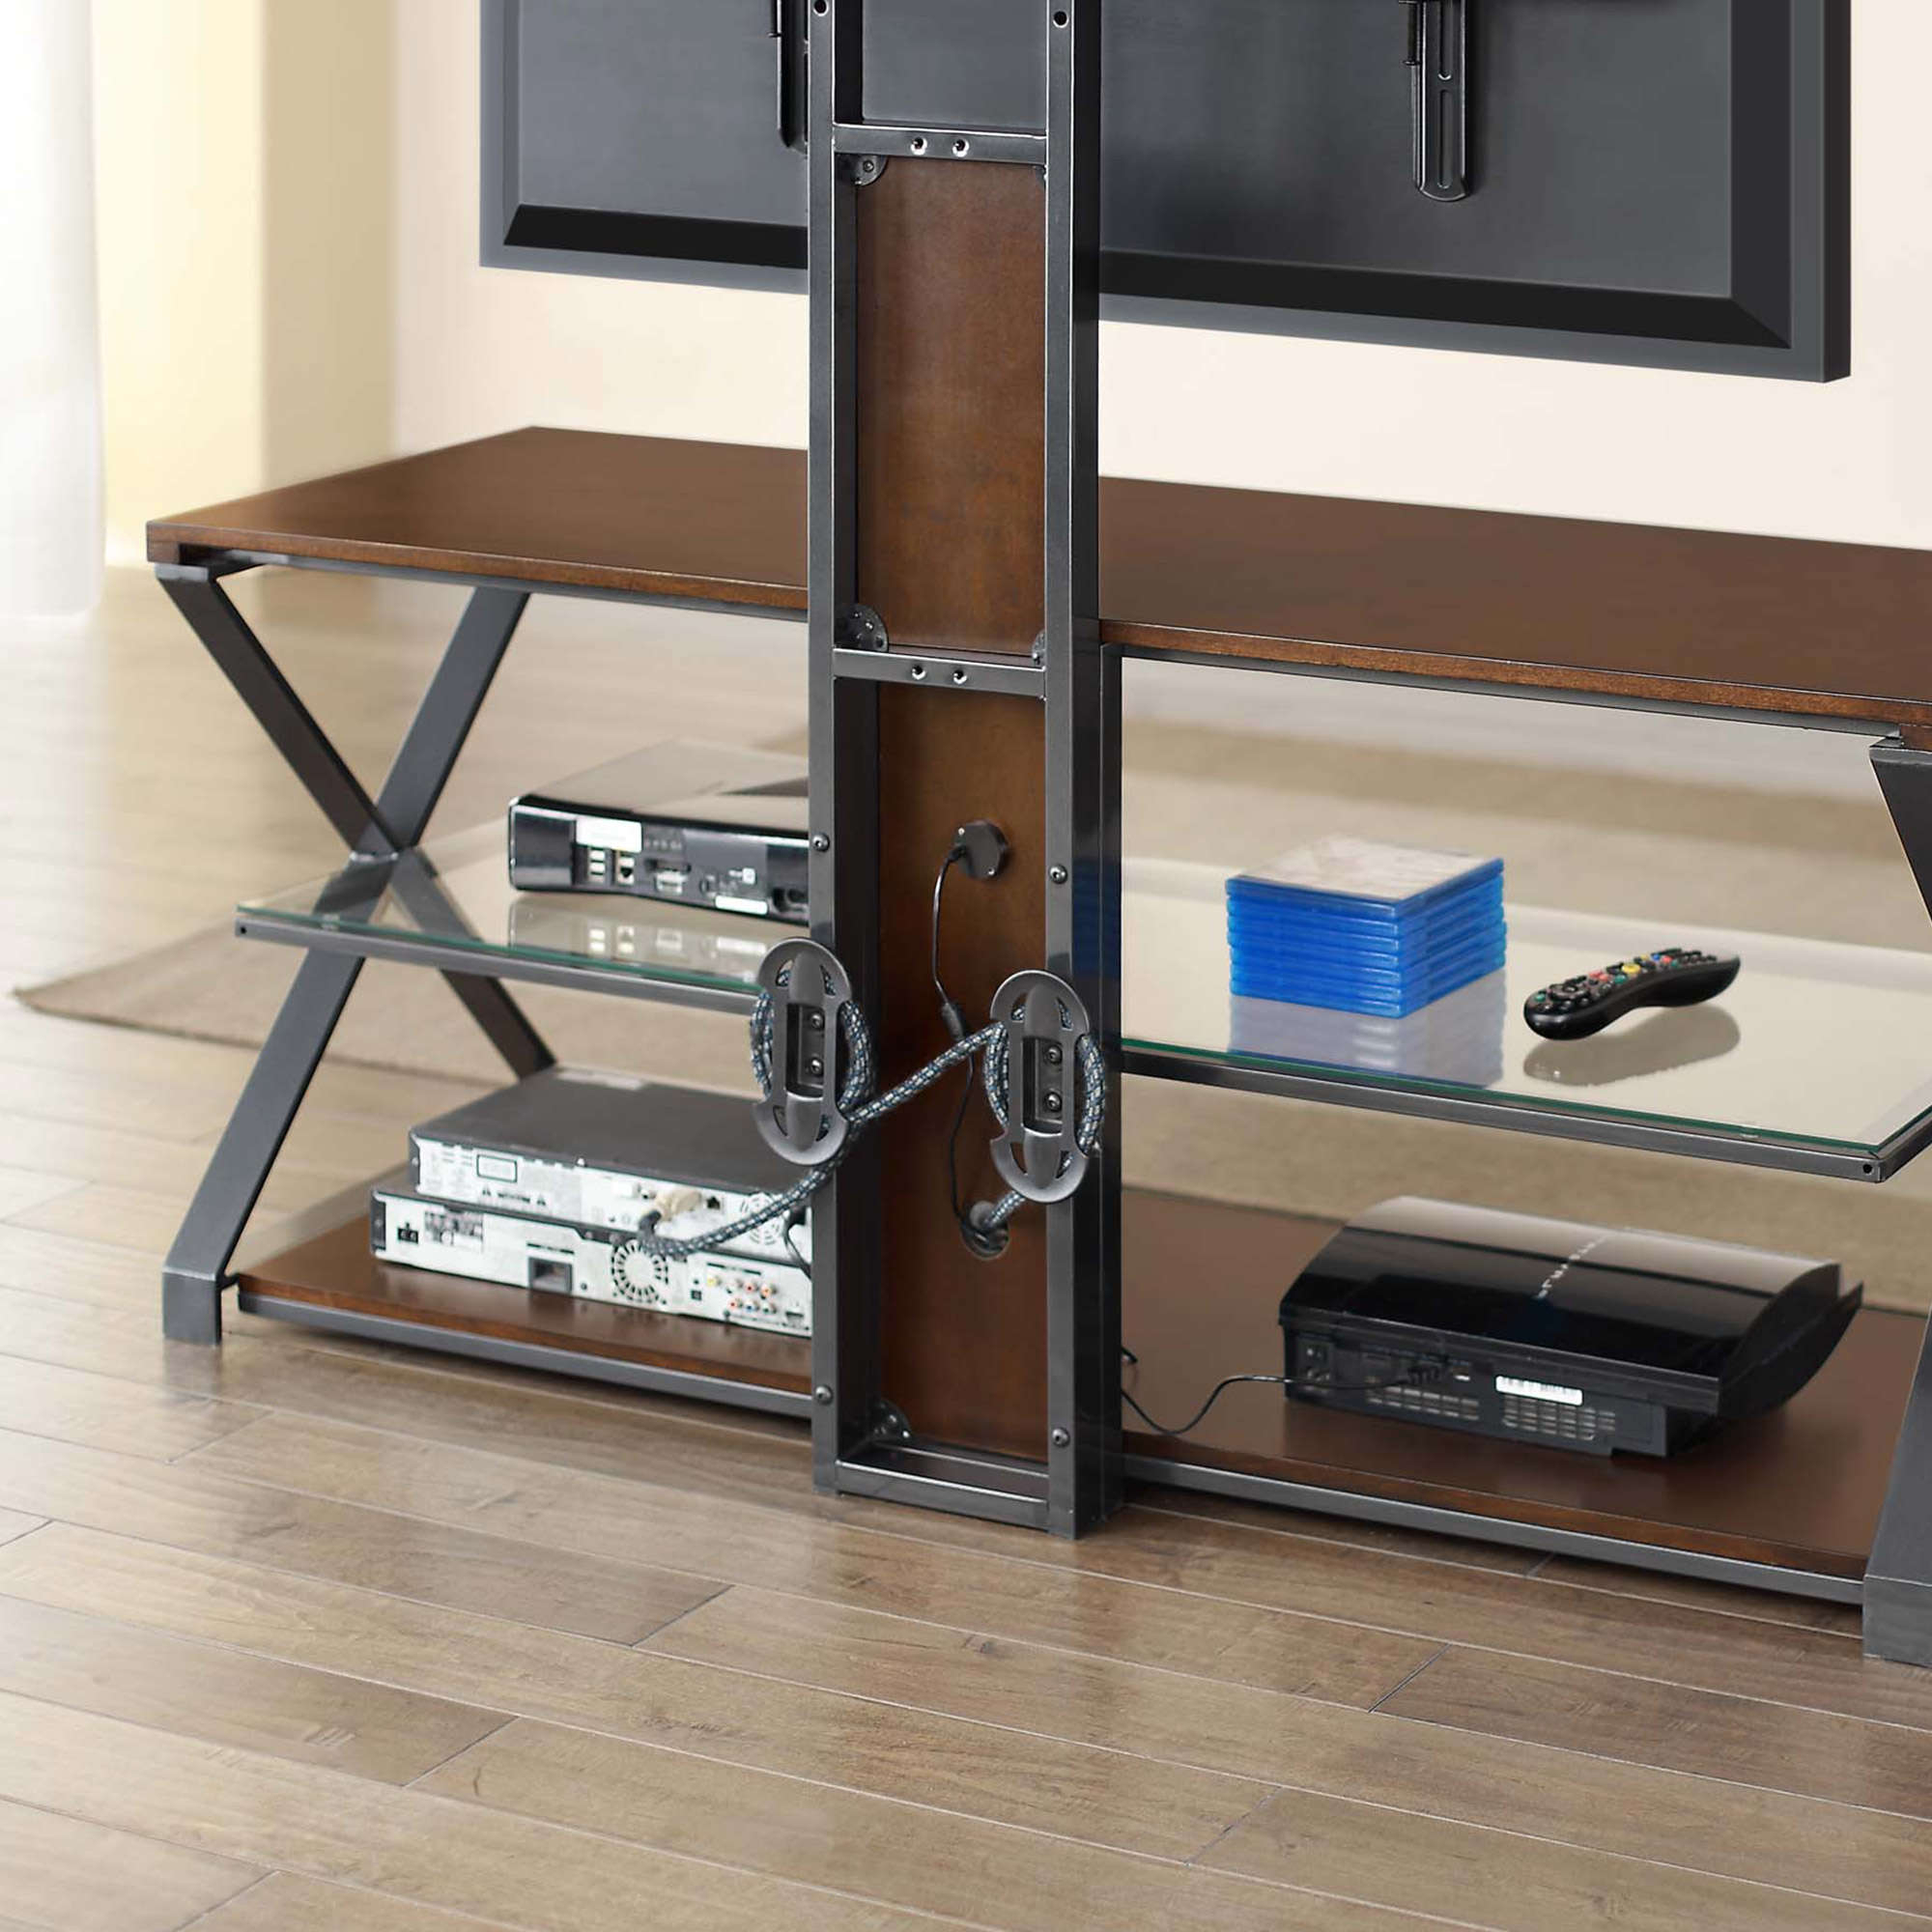 "Jaxon 3 In 1 Cognac Tv Stand For Tvs Up To 70"" – Walmart Intended For Jaxon 71 Inch Tv Stands (View 6 of 20)"